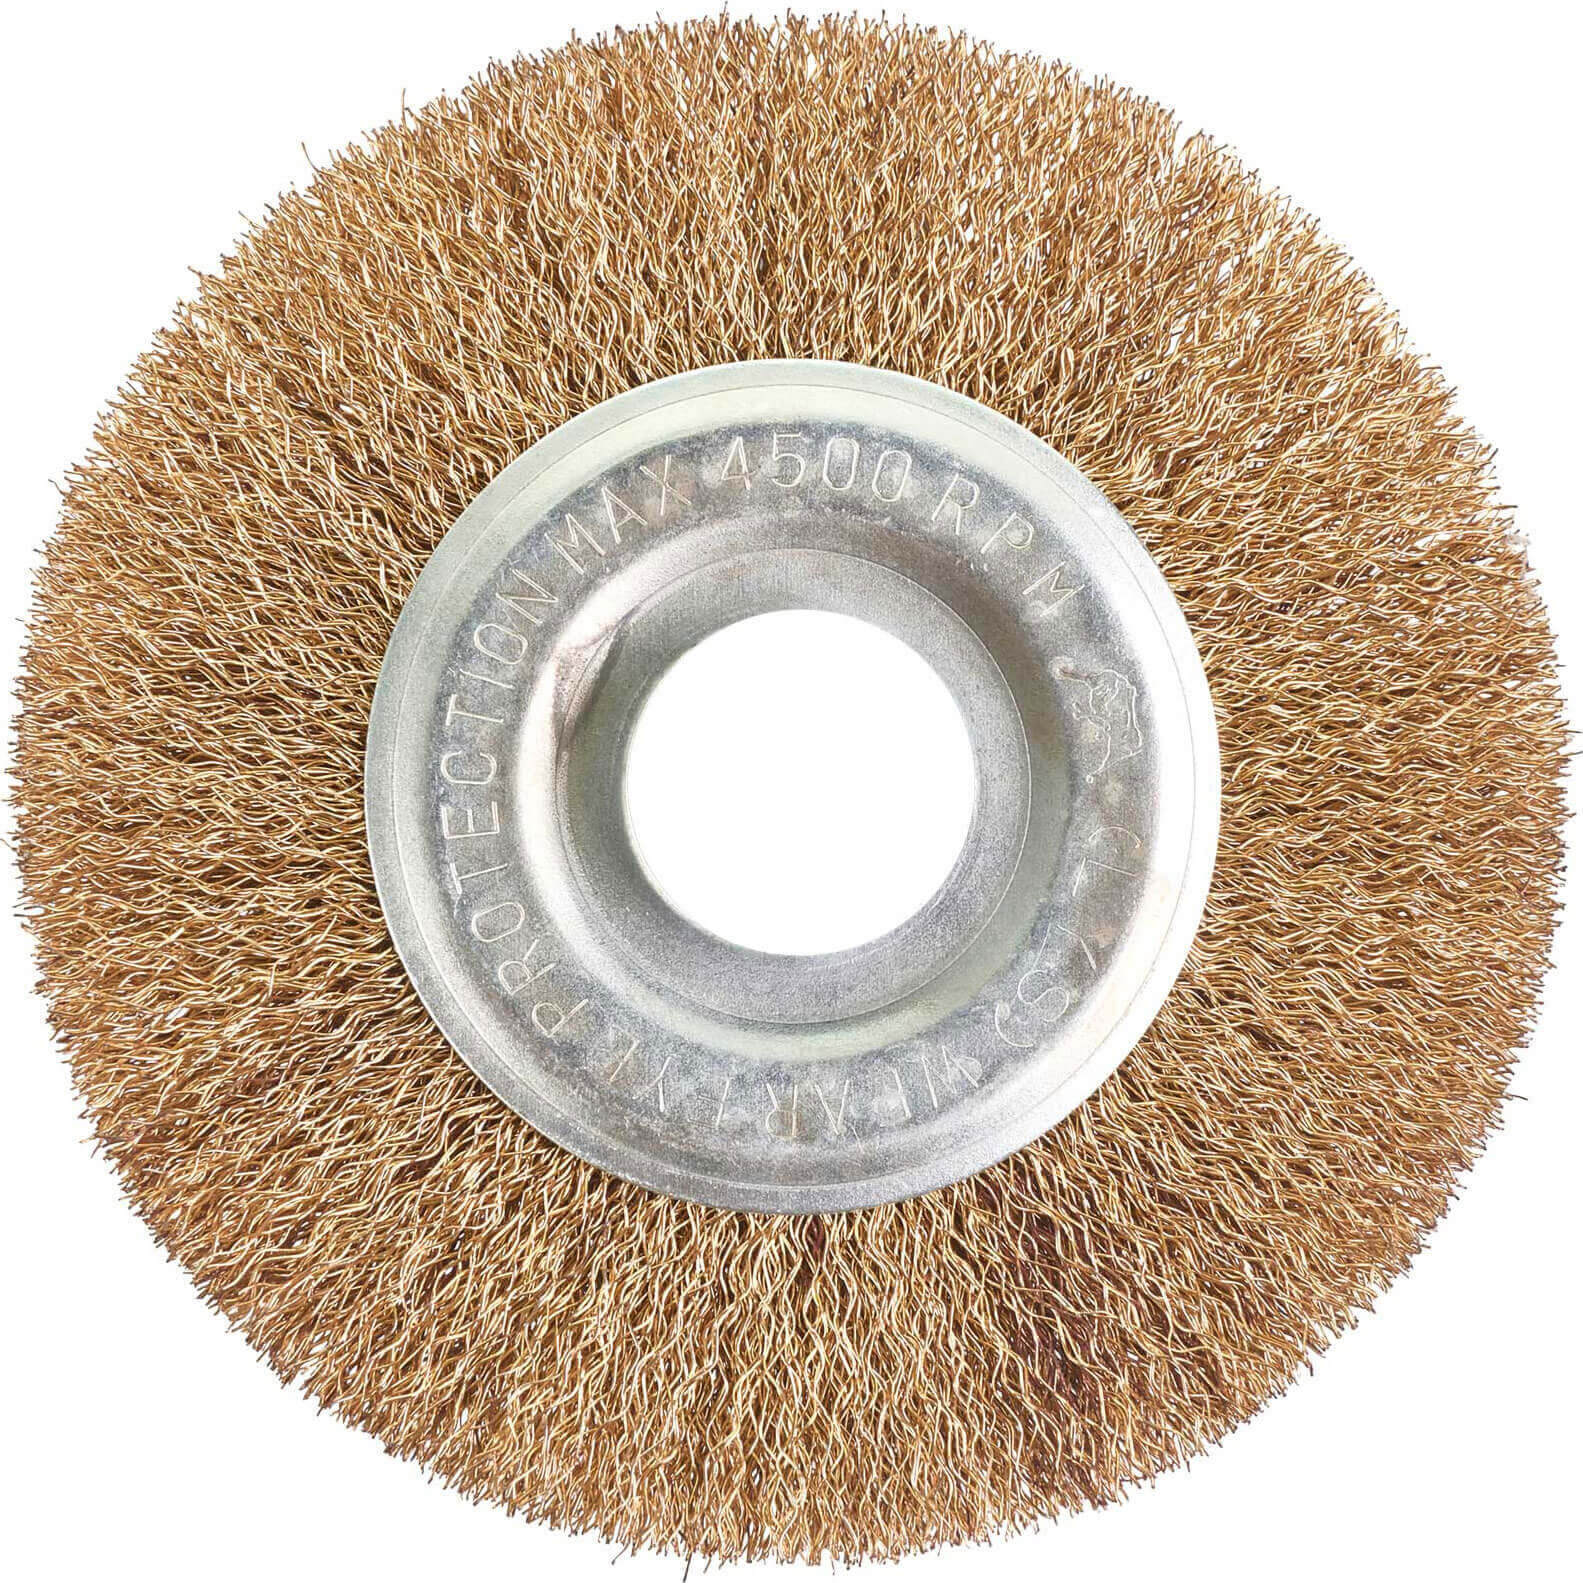 Garden Ryobi RAC814 Patio Cleaner Wire Brush for OPC1800 and RY18PCA